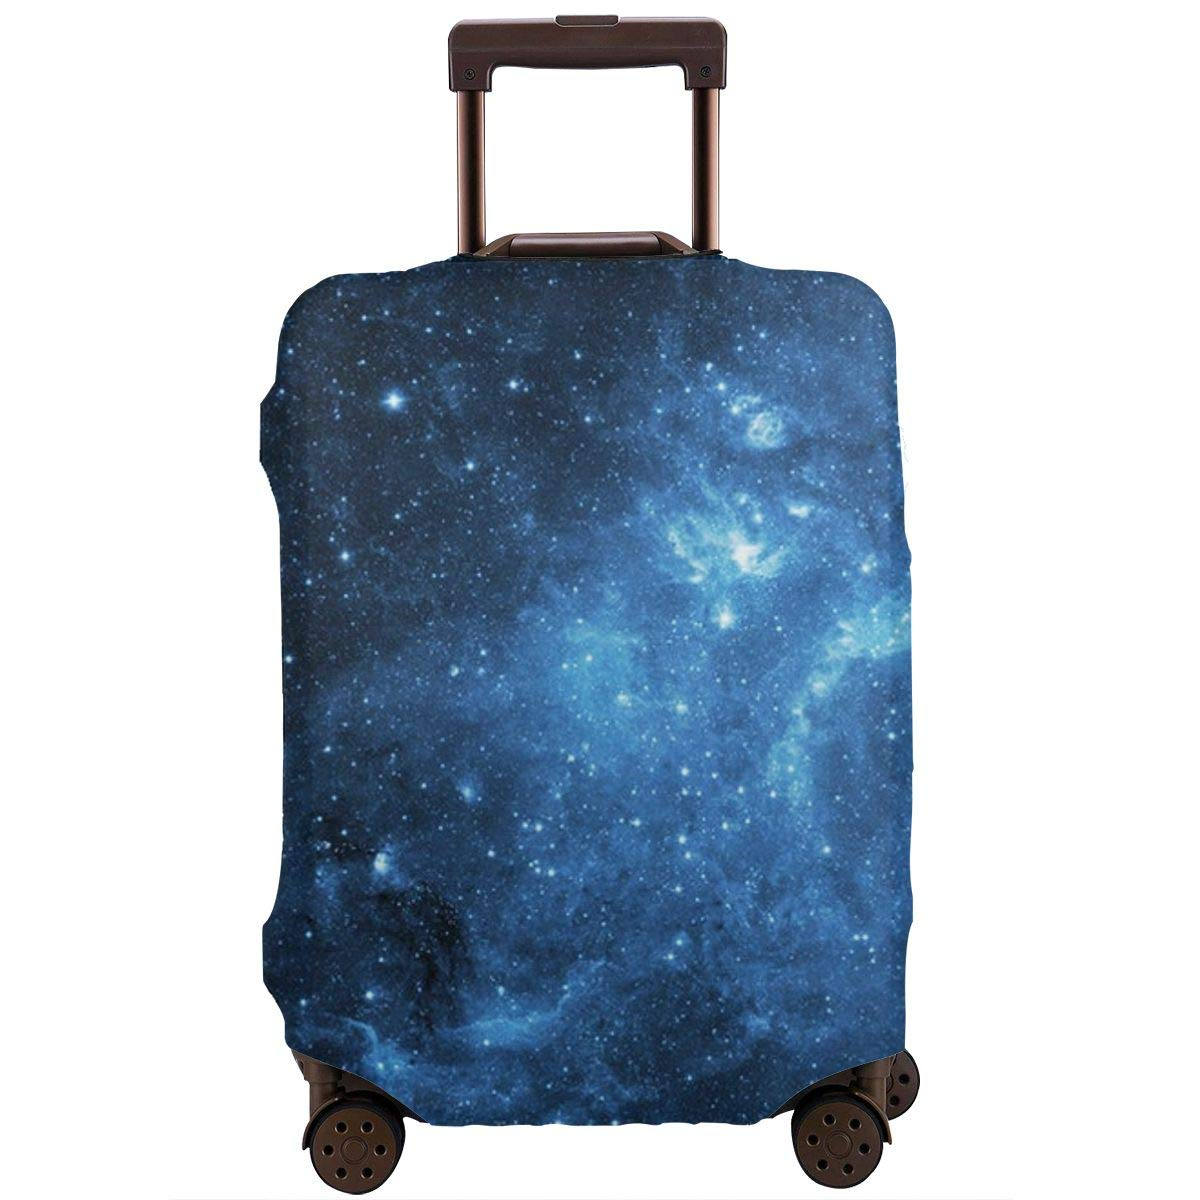 the Universe Is Dying Slowly XL Fashion Luggage Covers Suitcase Protector Jacket Dust-proof Anti-thief Case S M L XL for 18-32 inch Luggage